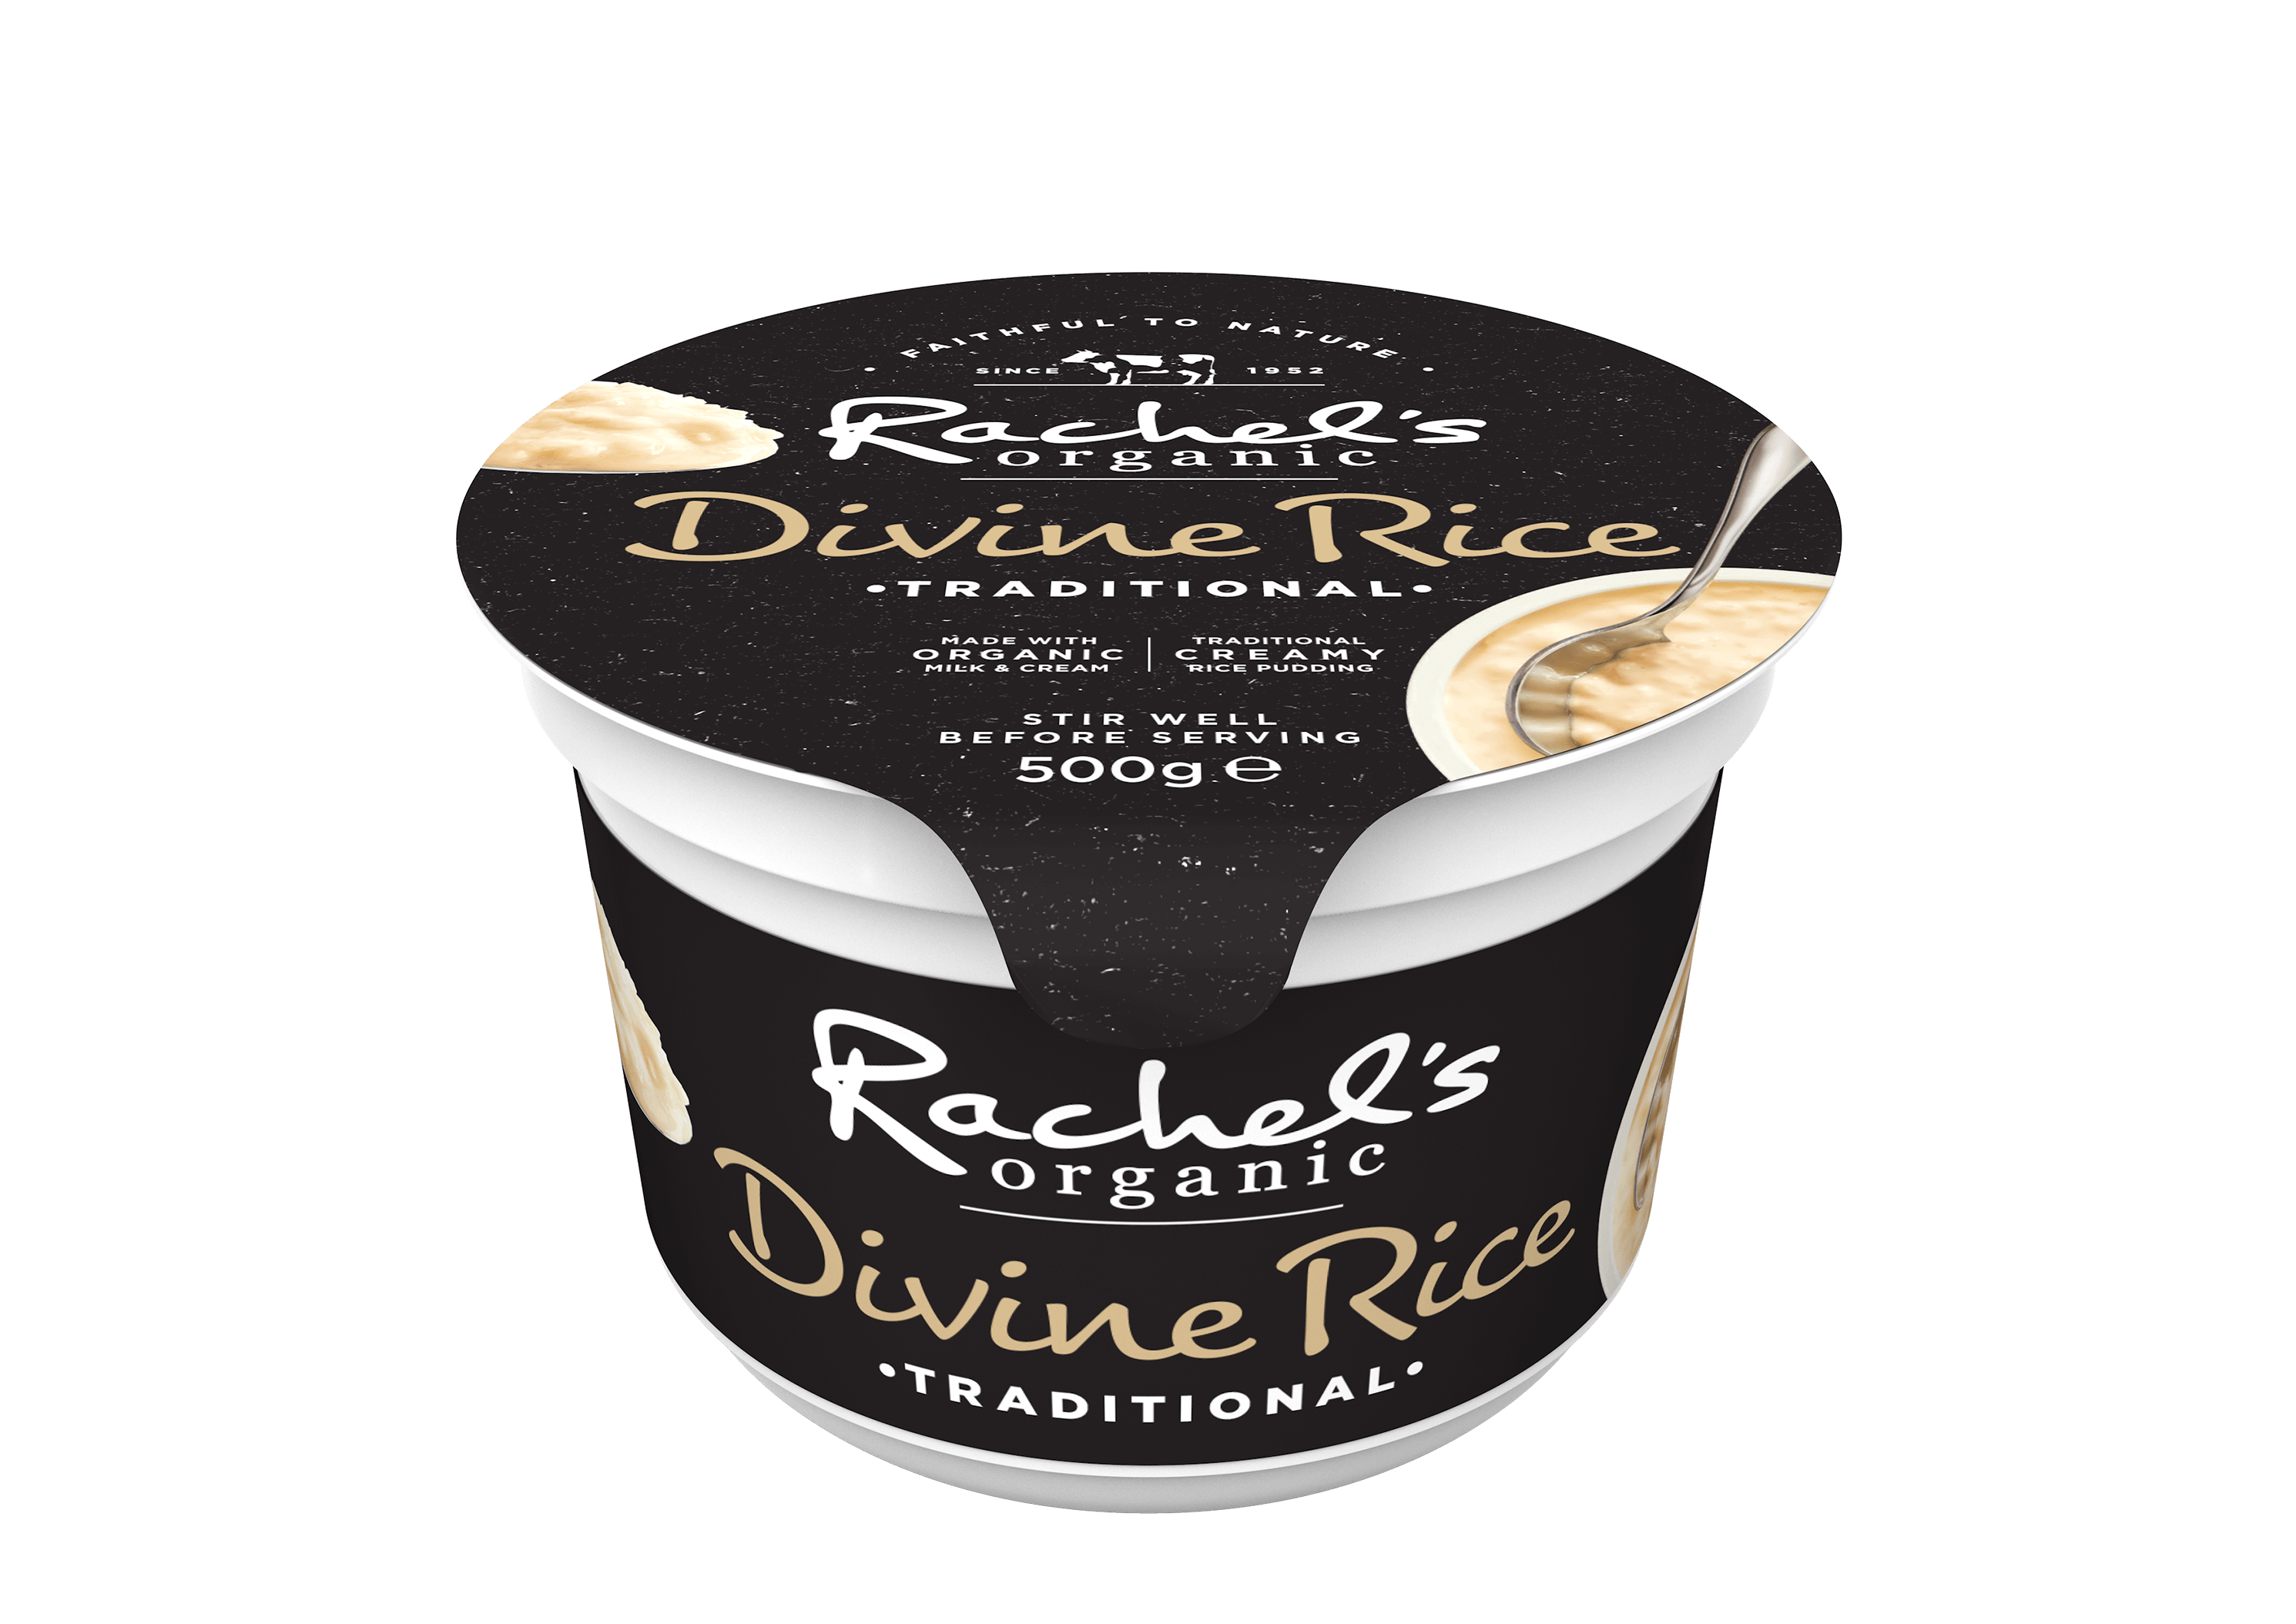 https://www.rachelsorganic.co.uk/wp-content/uploads/2019/12/5021638001868-Rachels-Divine-Rice-Traditional-500G-NEW.png